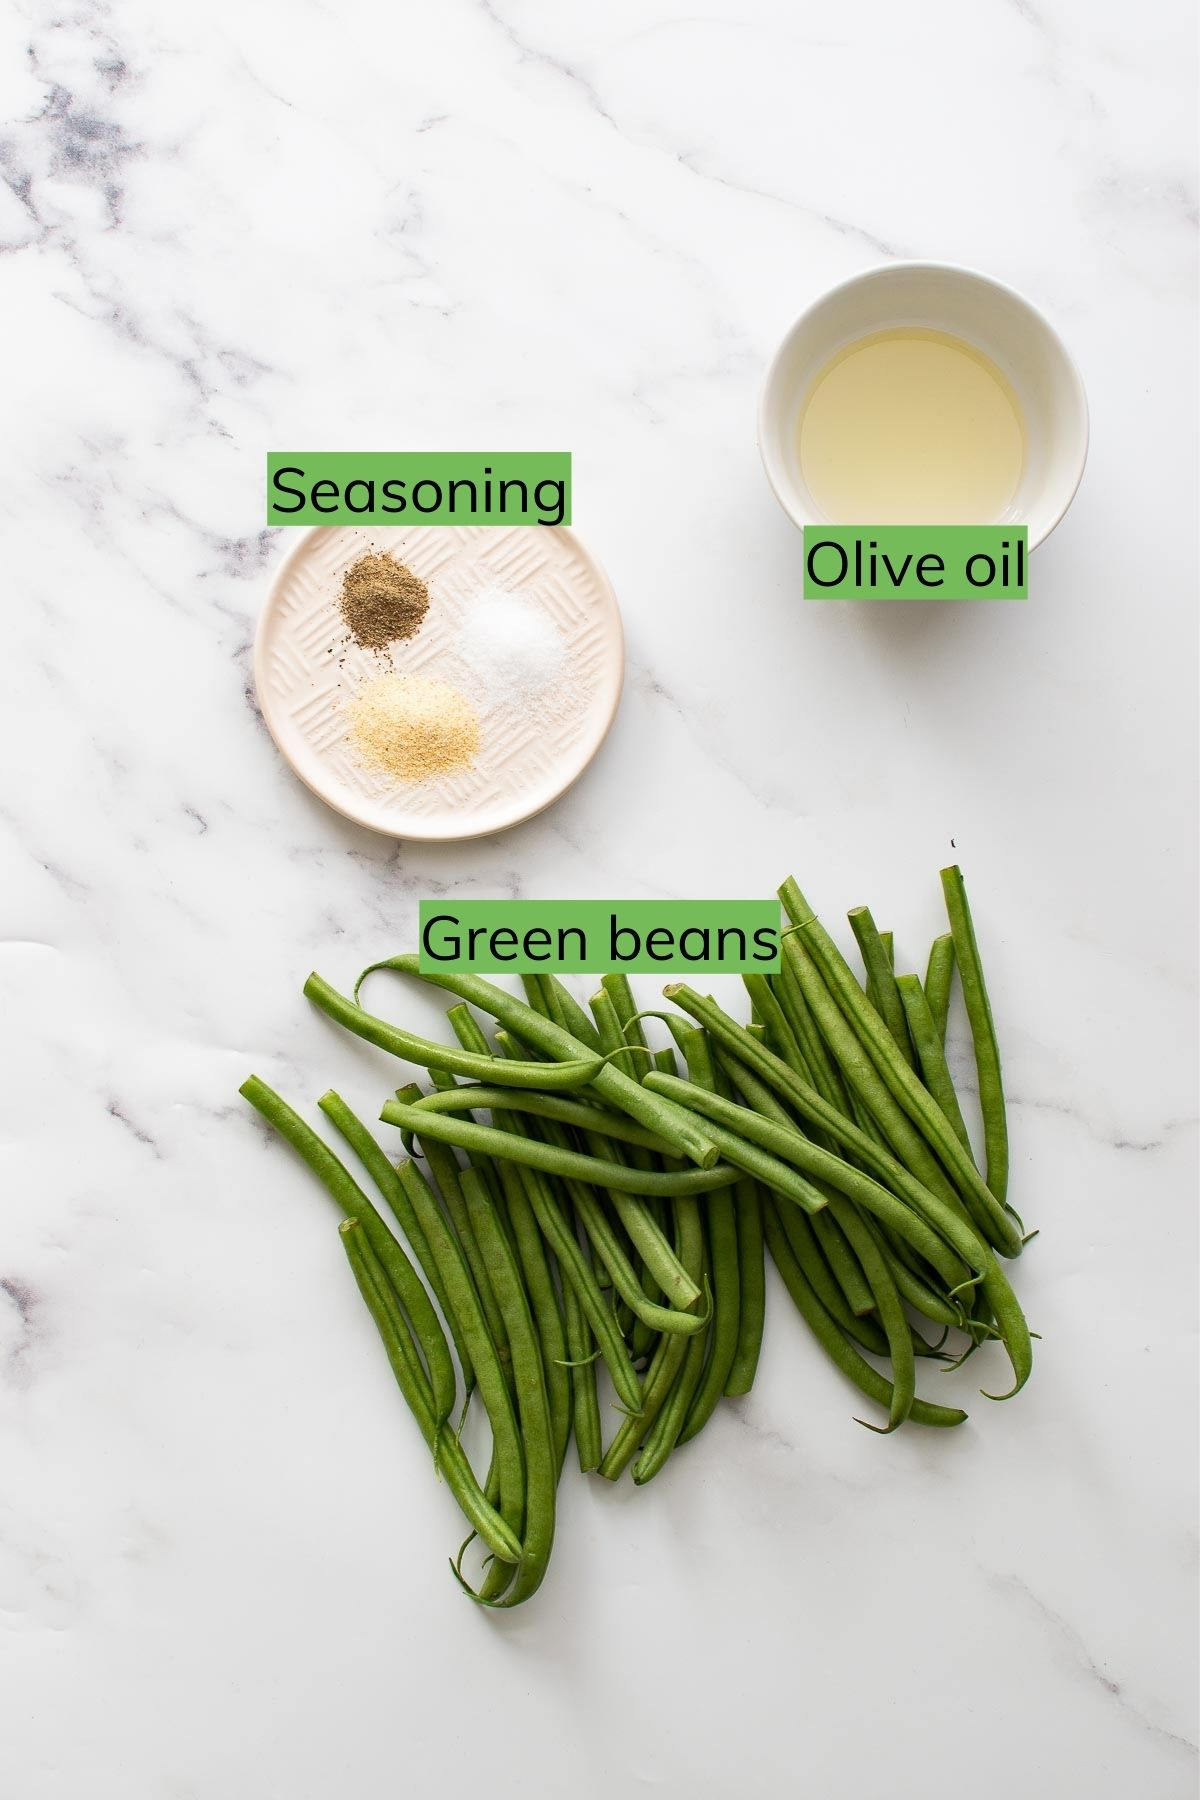 Green beans, seasoning and olive oil on a table.